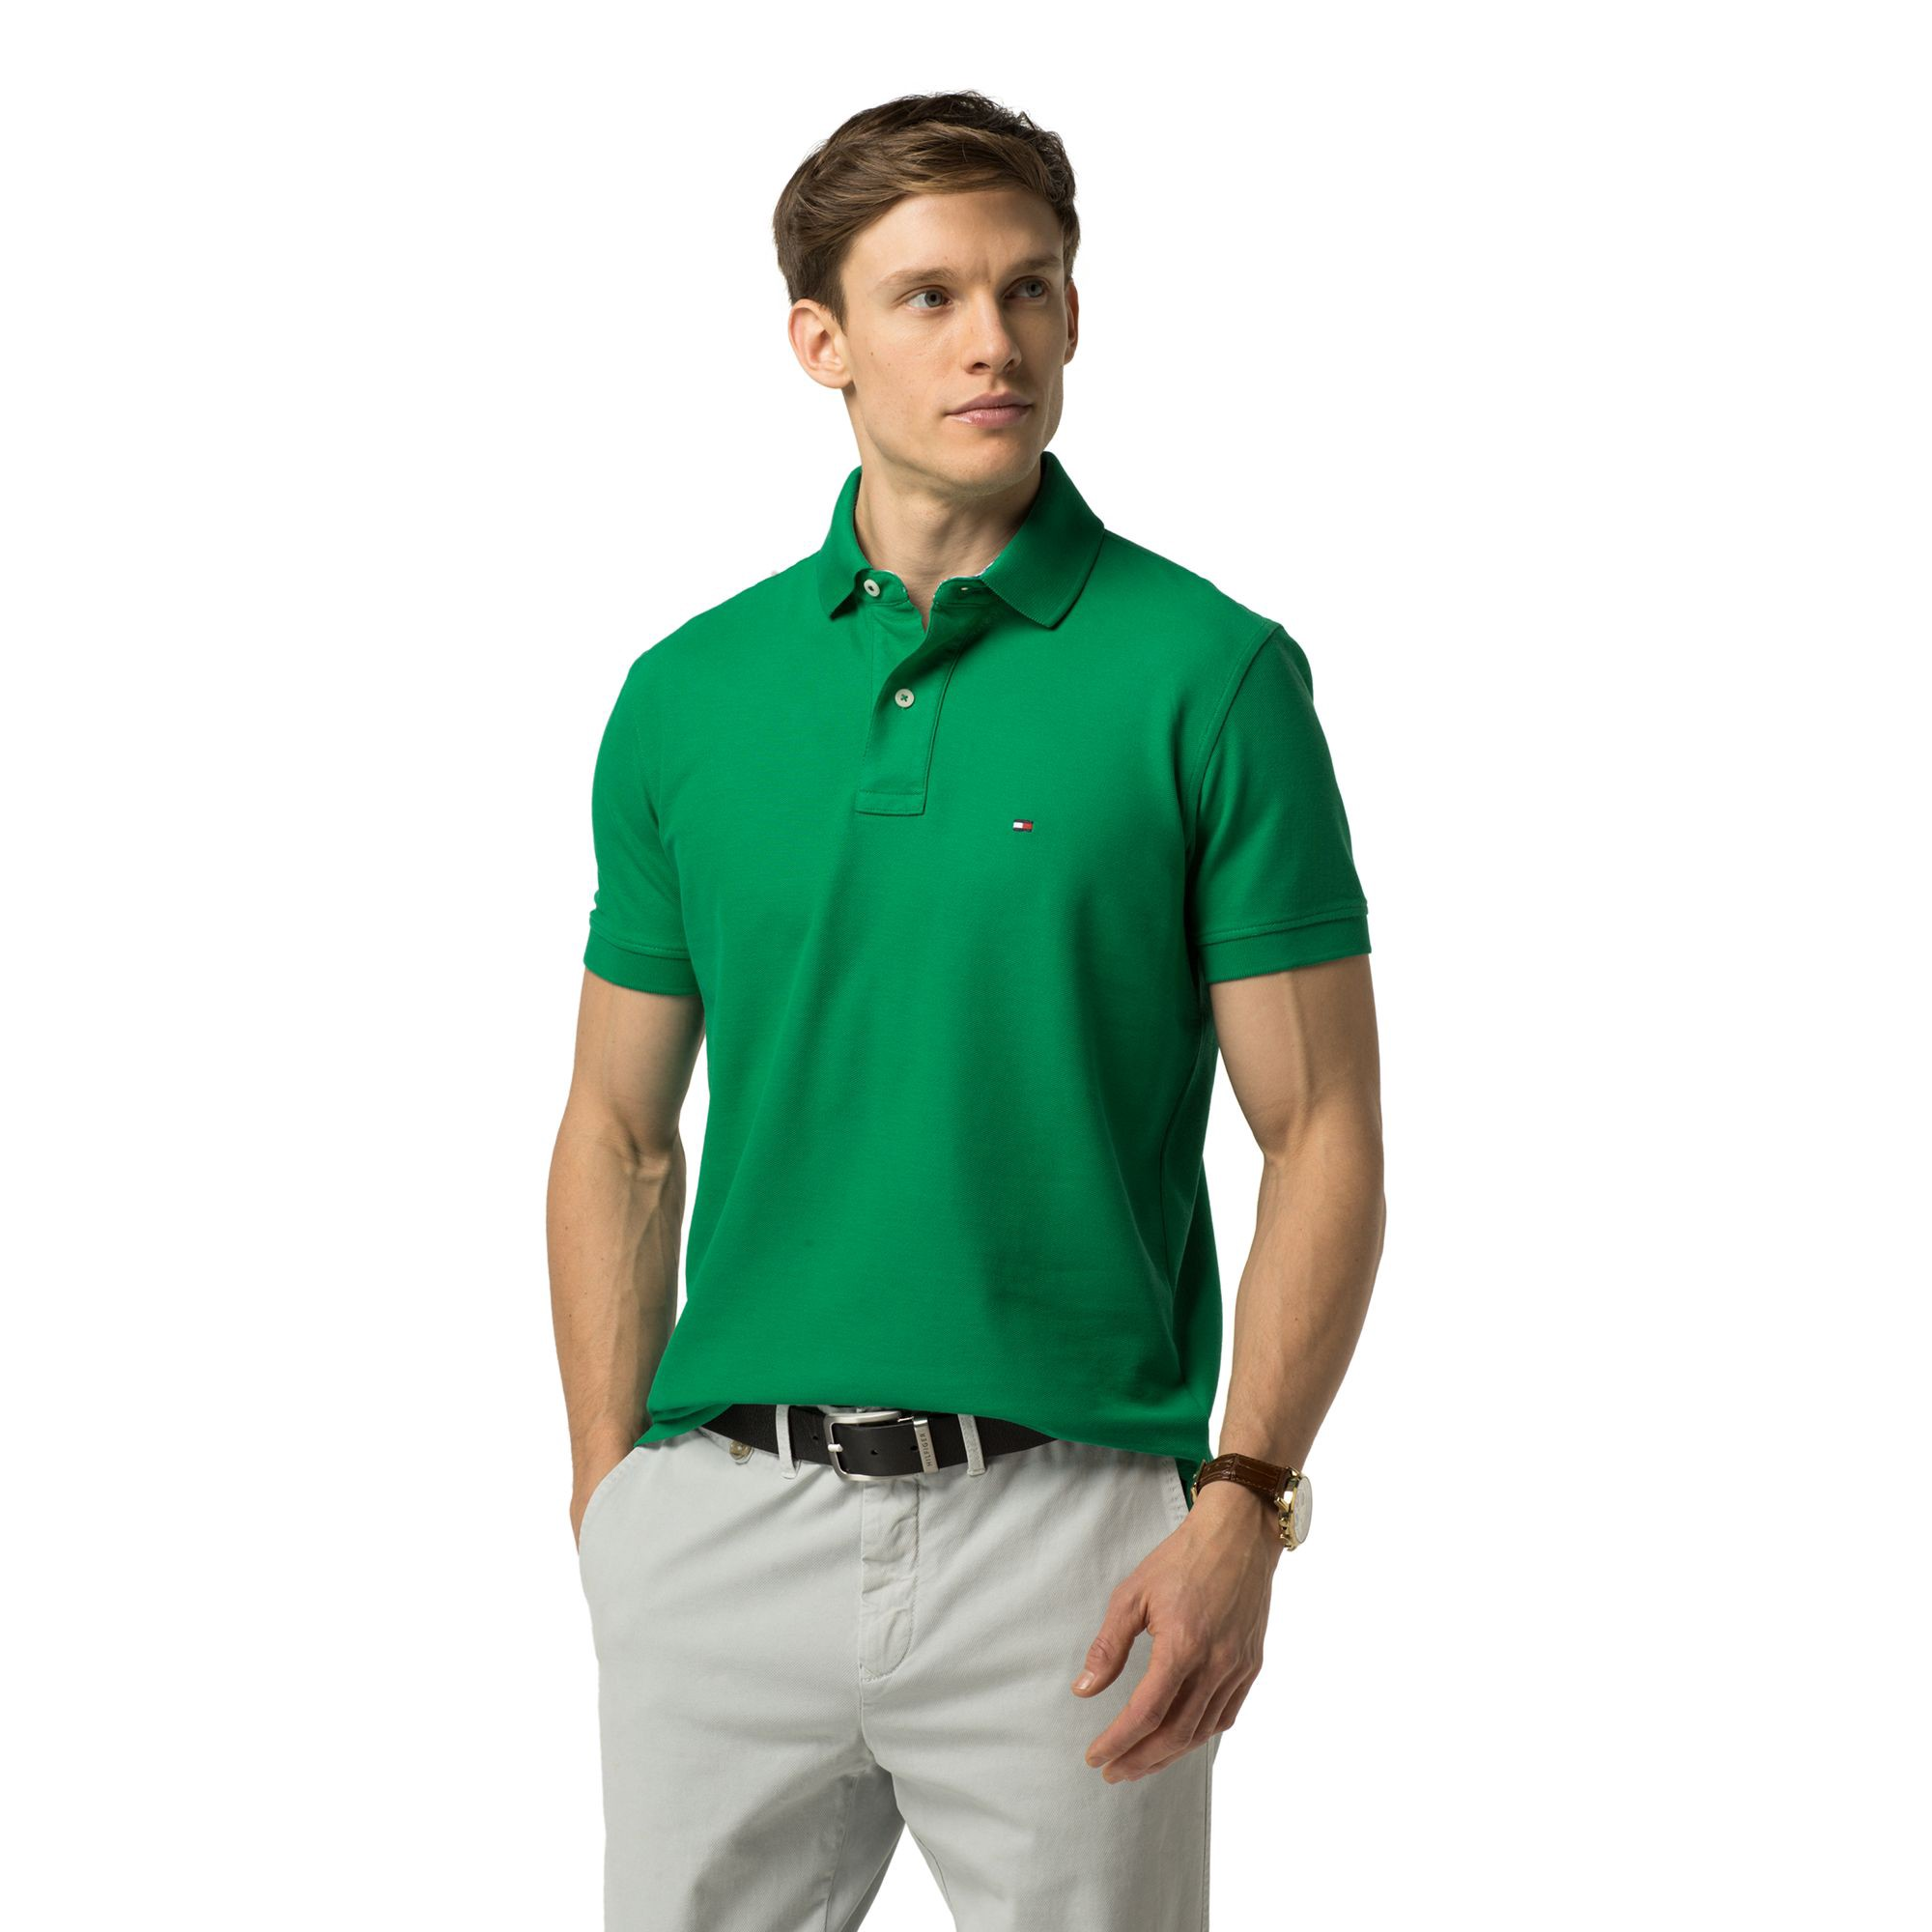 TOMMY HILFIGER Regular Fit Premium Pique Polo - Golf Green